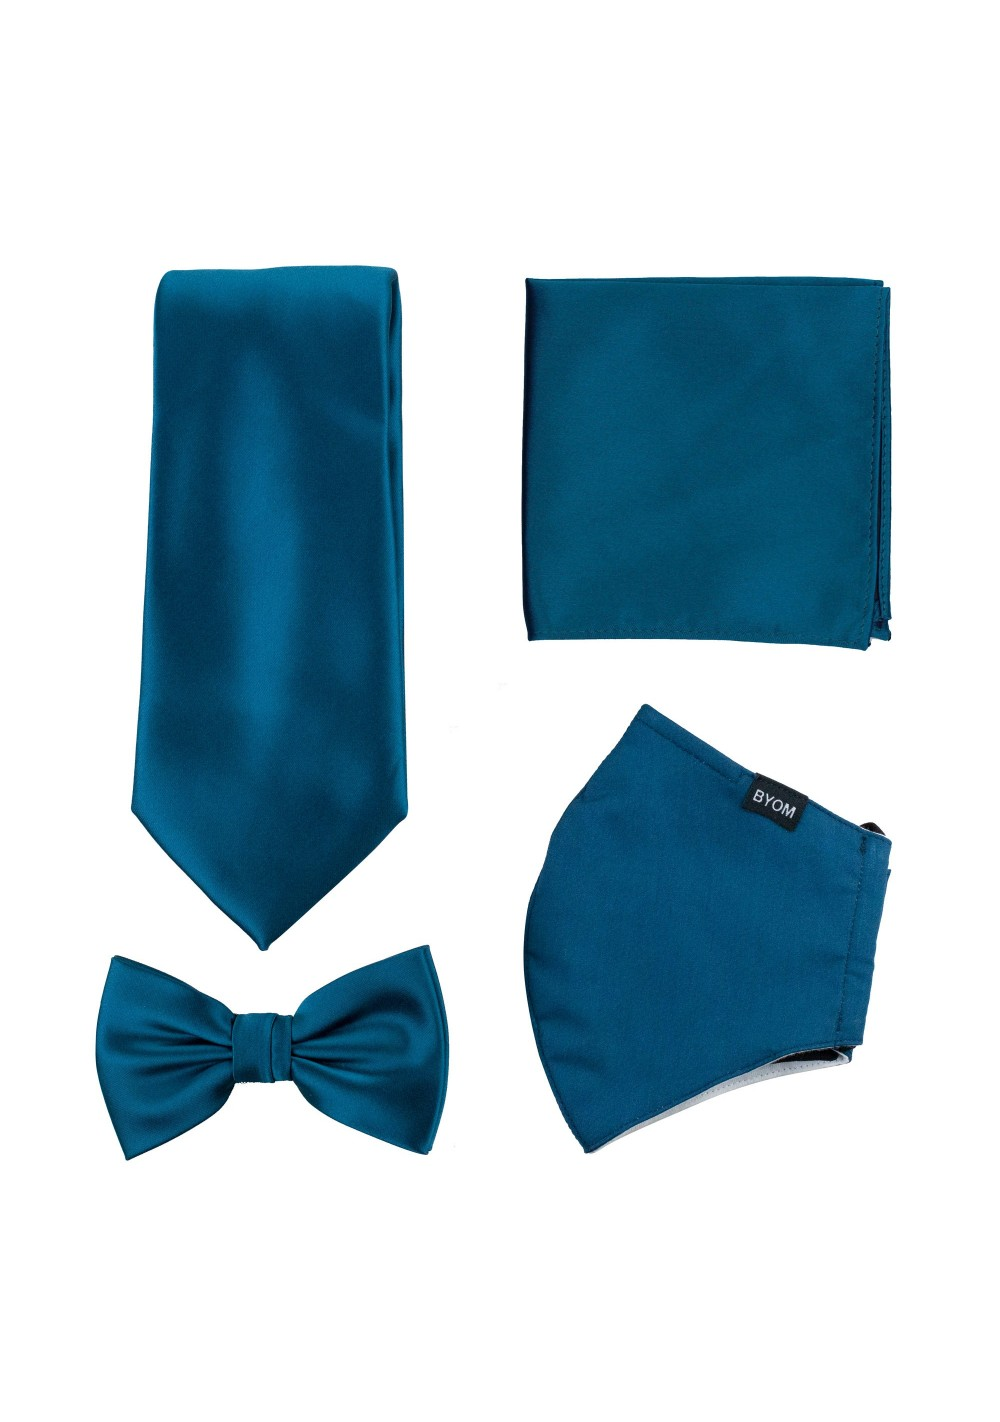 Teal Blue Mask and Tie Set